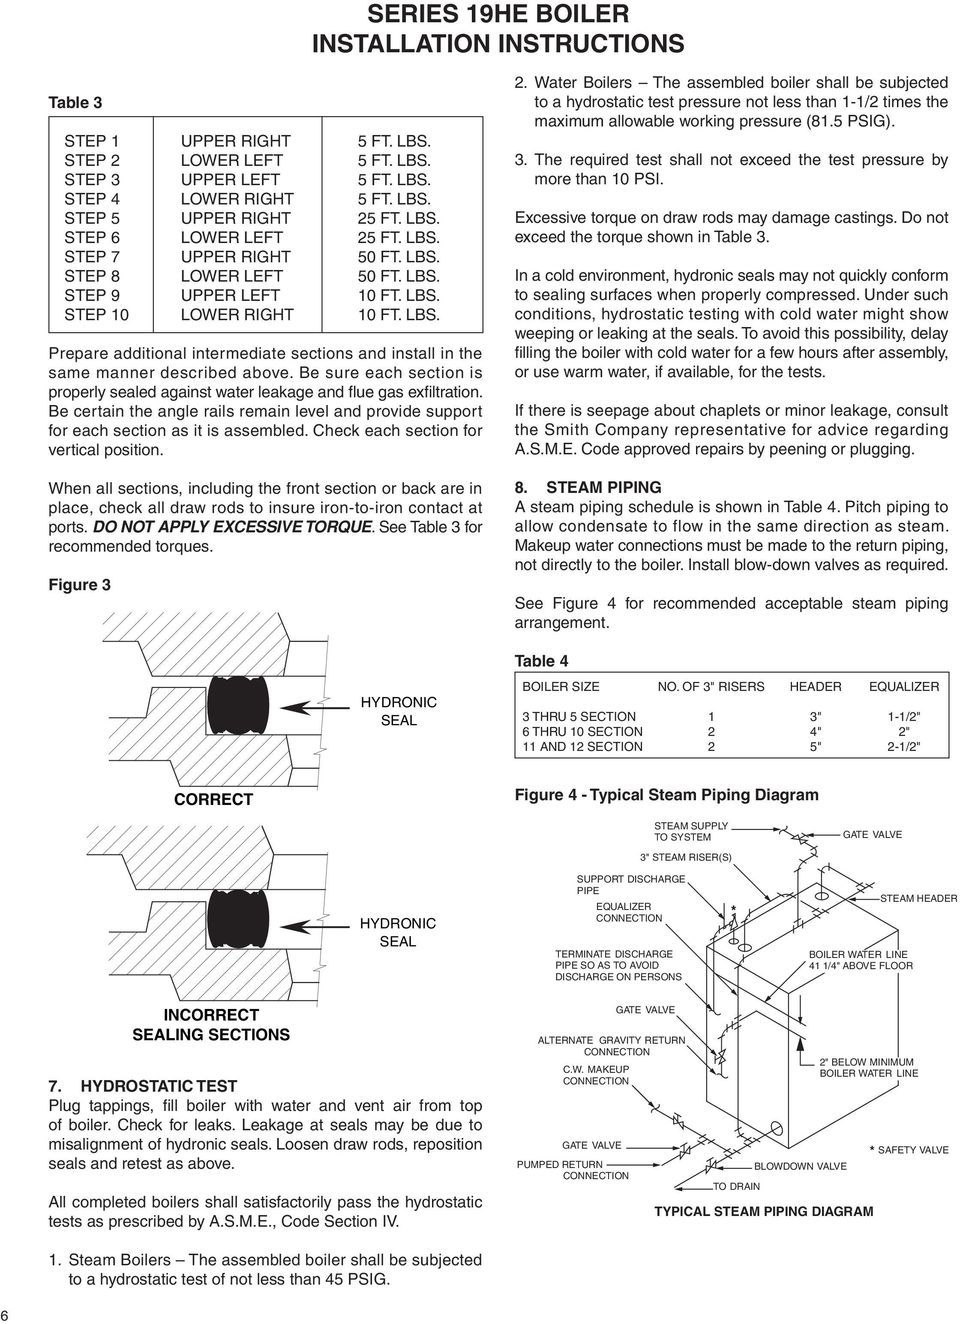 Series 19he Boiler Installation Instructions Pdf Piping Diagram Of Steam E Sure Each Section Is Properly Sealed Against Water Leakage And Flue Gas Exfiltration